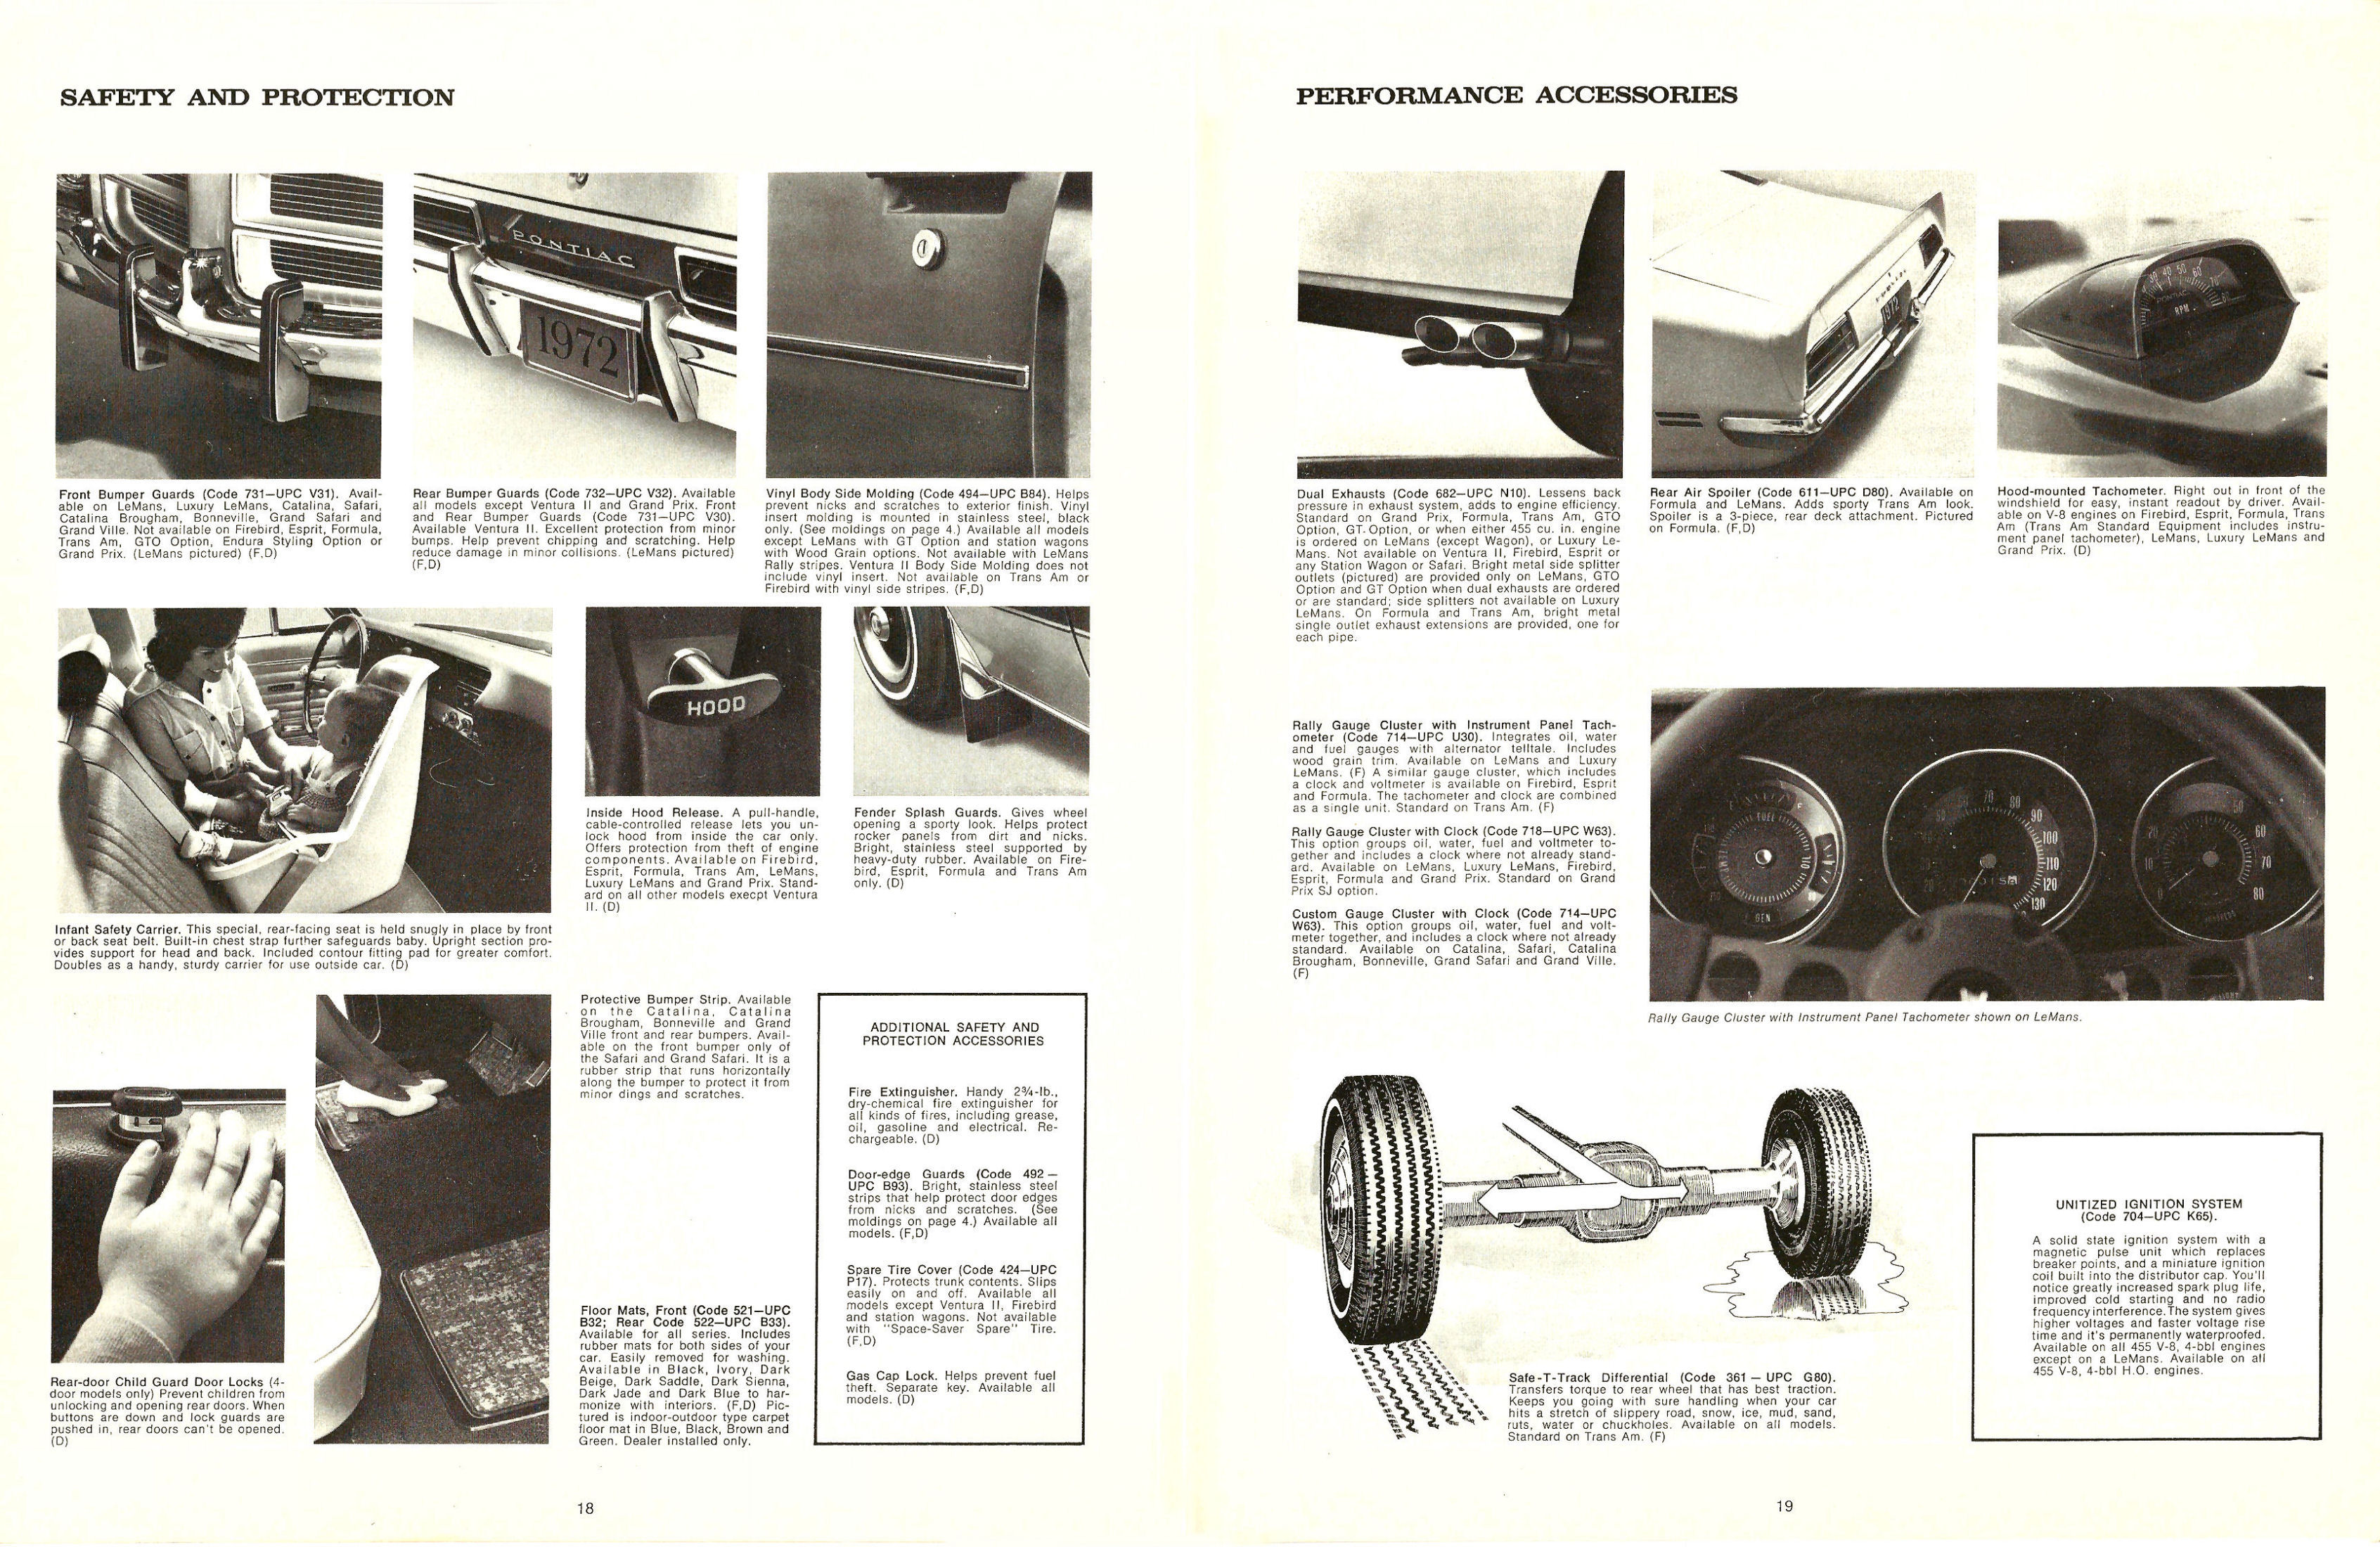 1972_Pontiac_Accessories-18-19.jpg